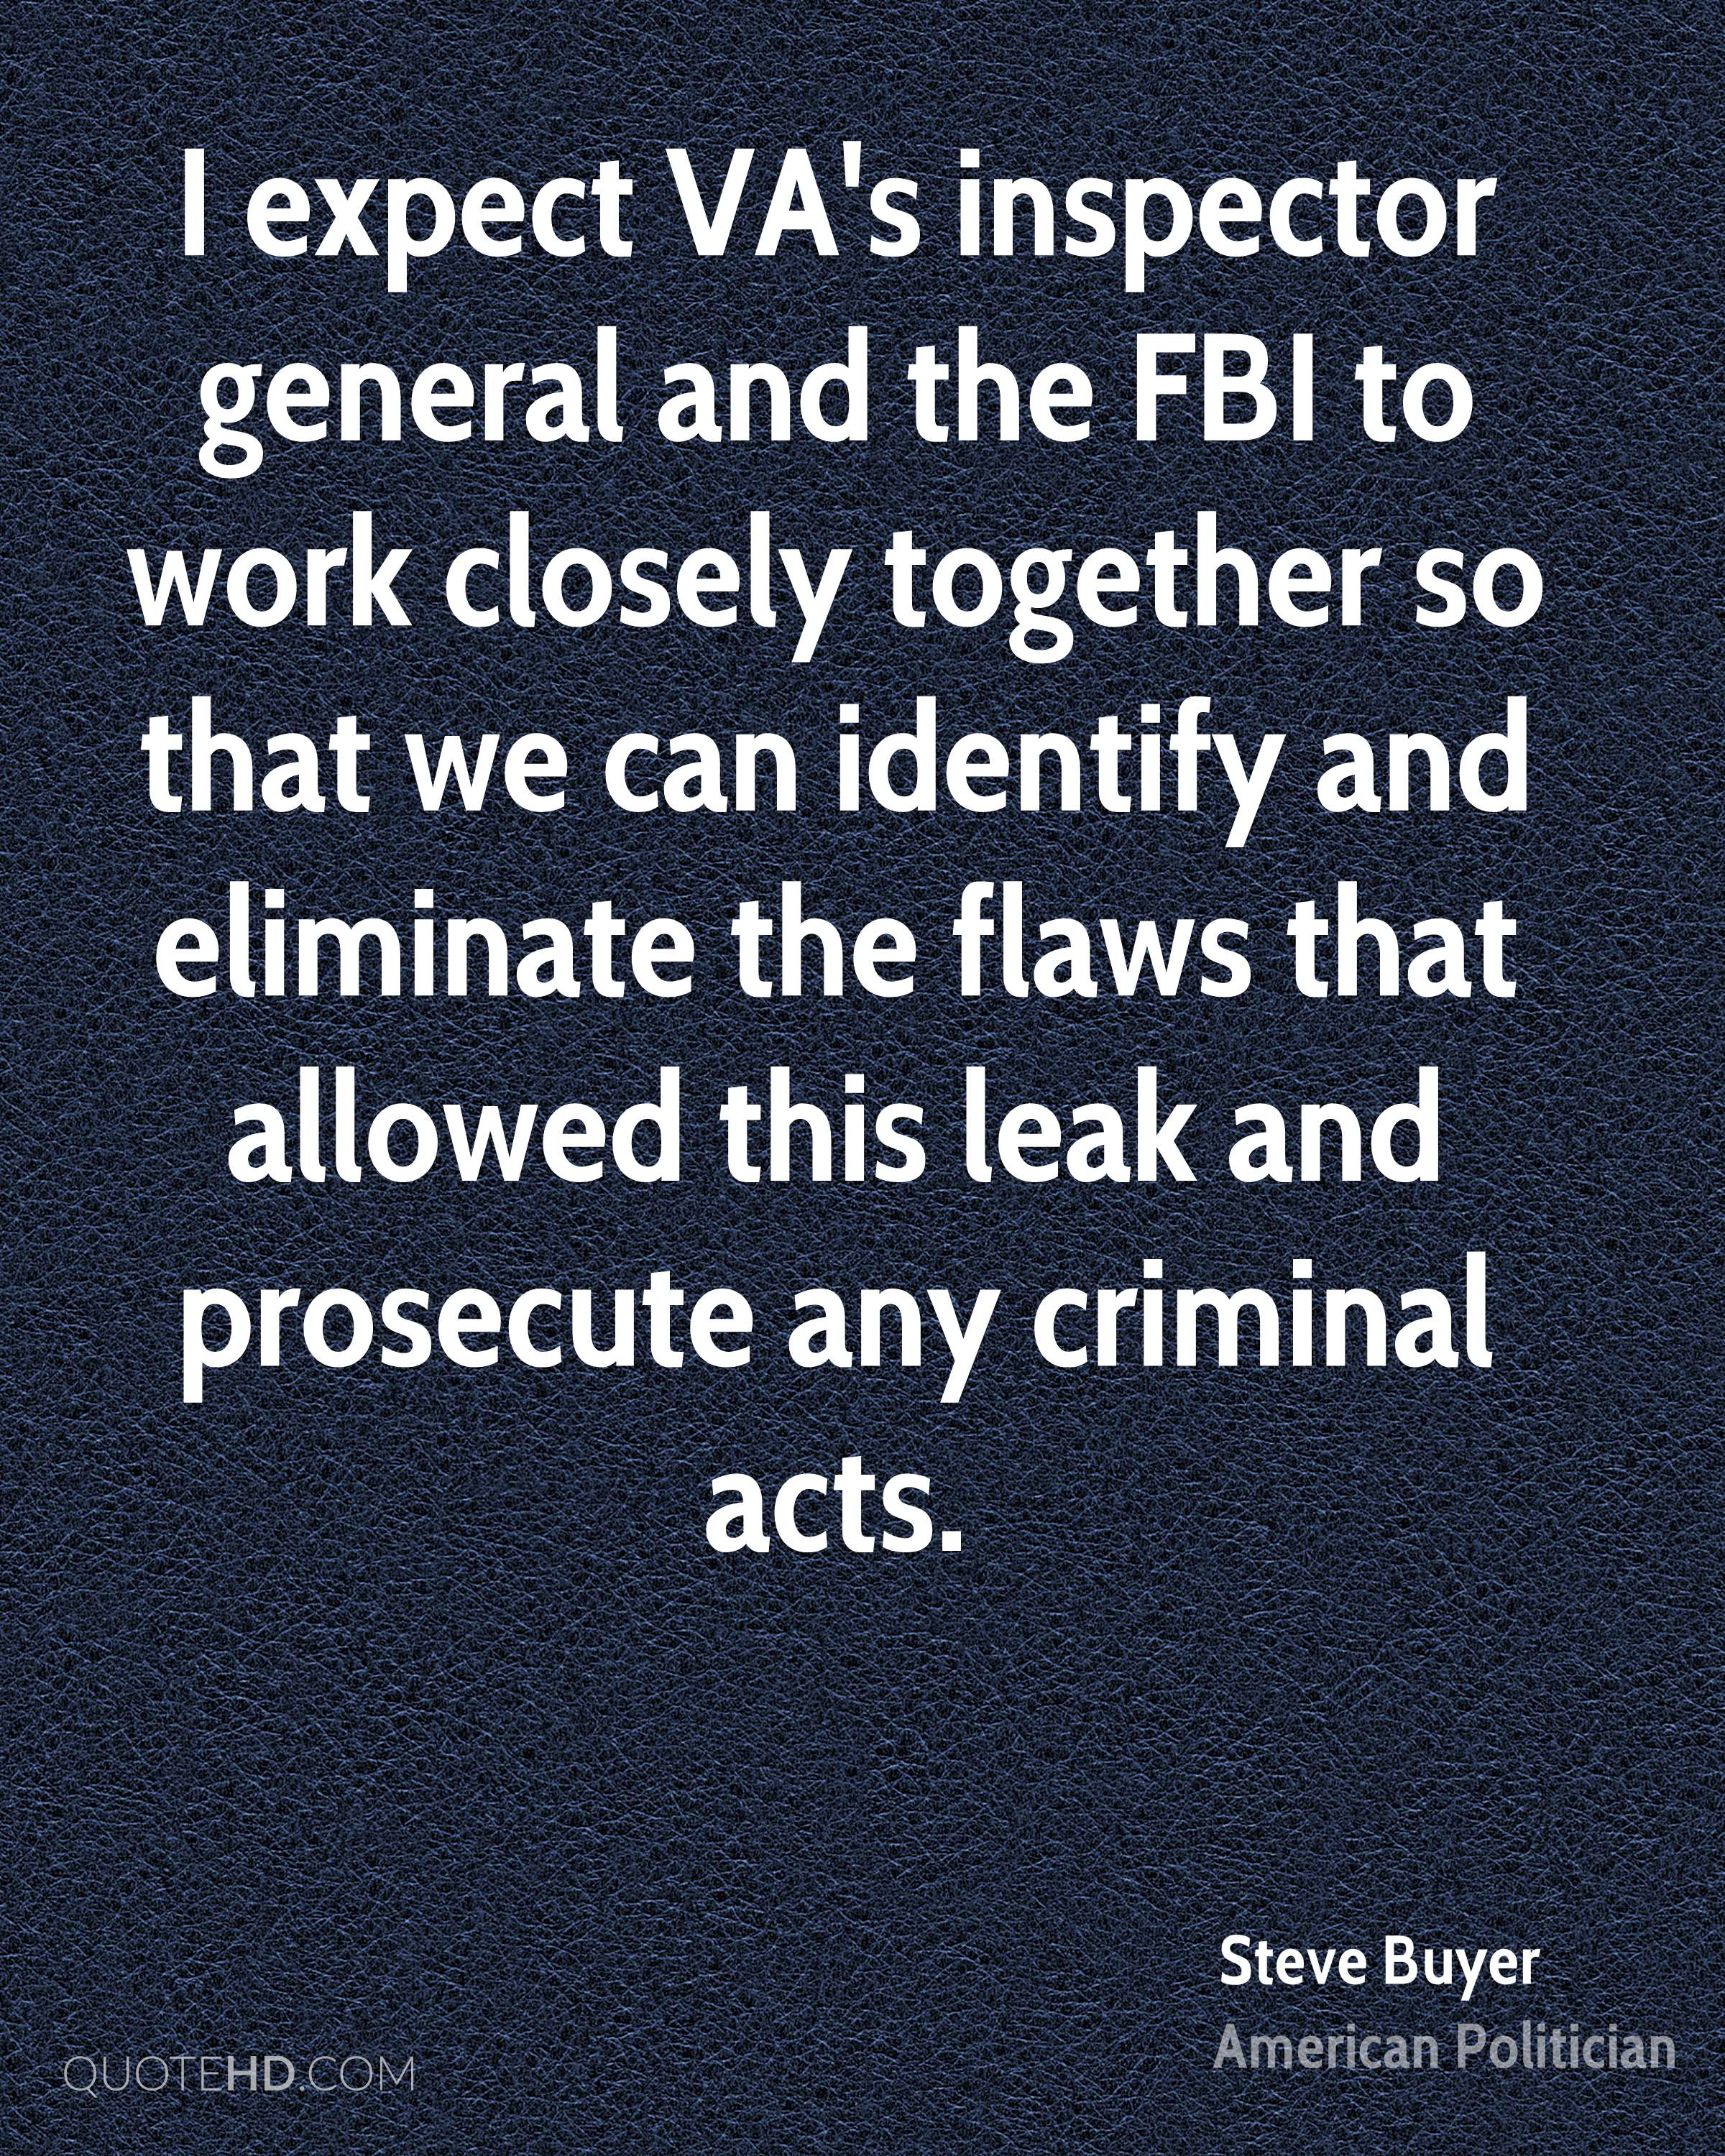 I expect VA's inspector general and the FBI to work closely together so that we can identify and eliminate the flaws that allowed this leak and prosecute any criminal acts.